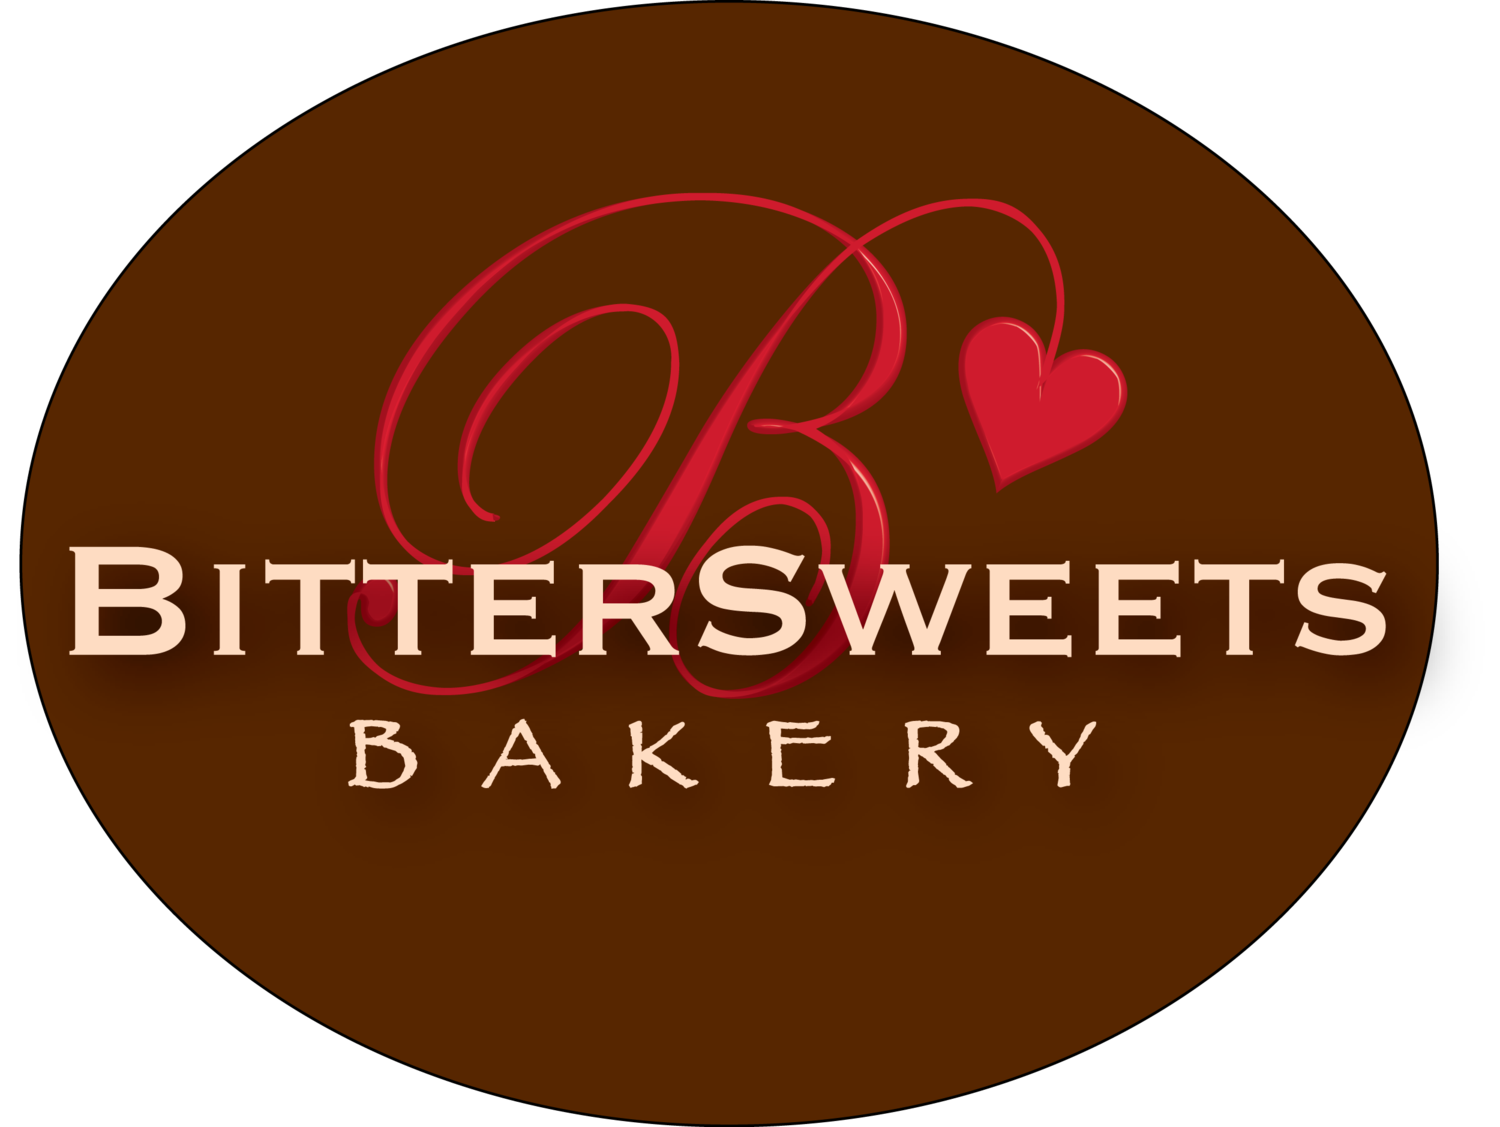 BITTERSWEETS BAKERY featuring STUNNING WEDDING CAKES, Gourmet Cupcakes made from Scratch Everyday!